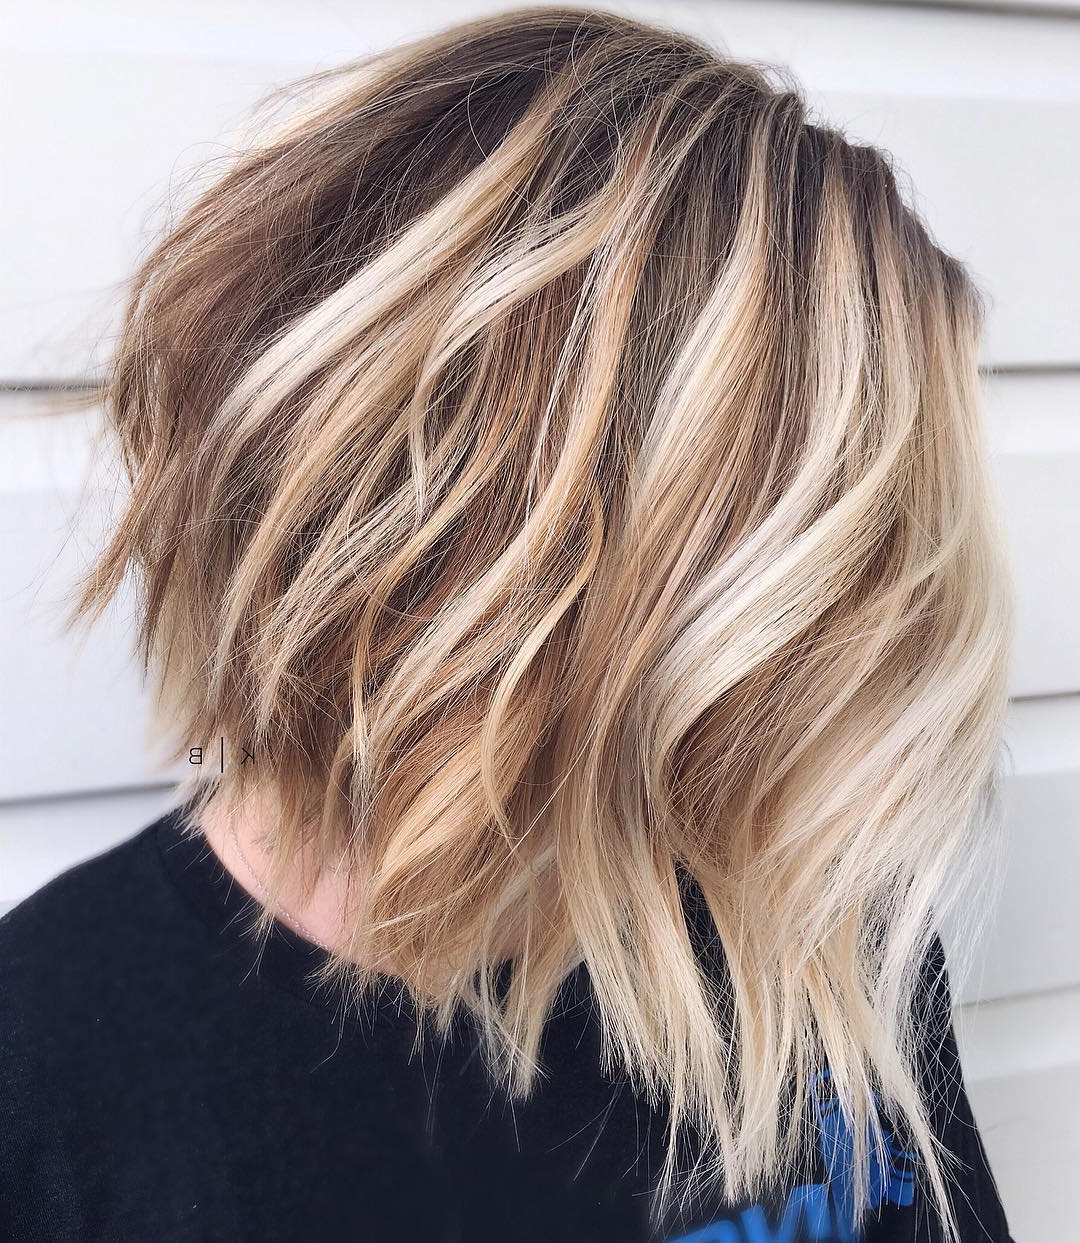 Famous Blonde Lob Hairstyles With Disconnected Jagged Layers Intended For Find Your Best Bob Haircut For 2019 (Gallery 8 of 20)